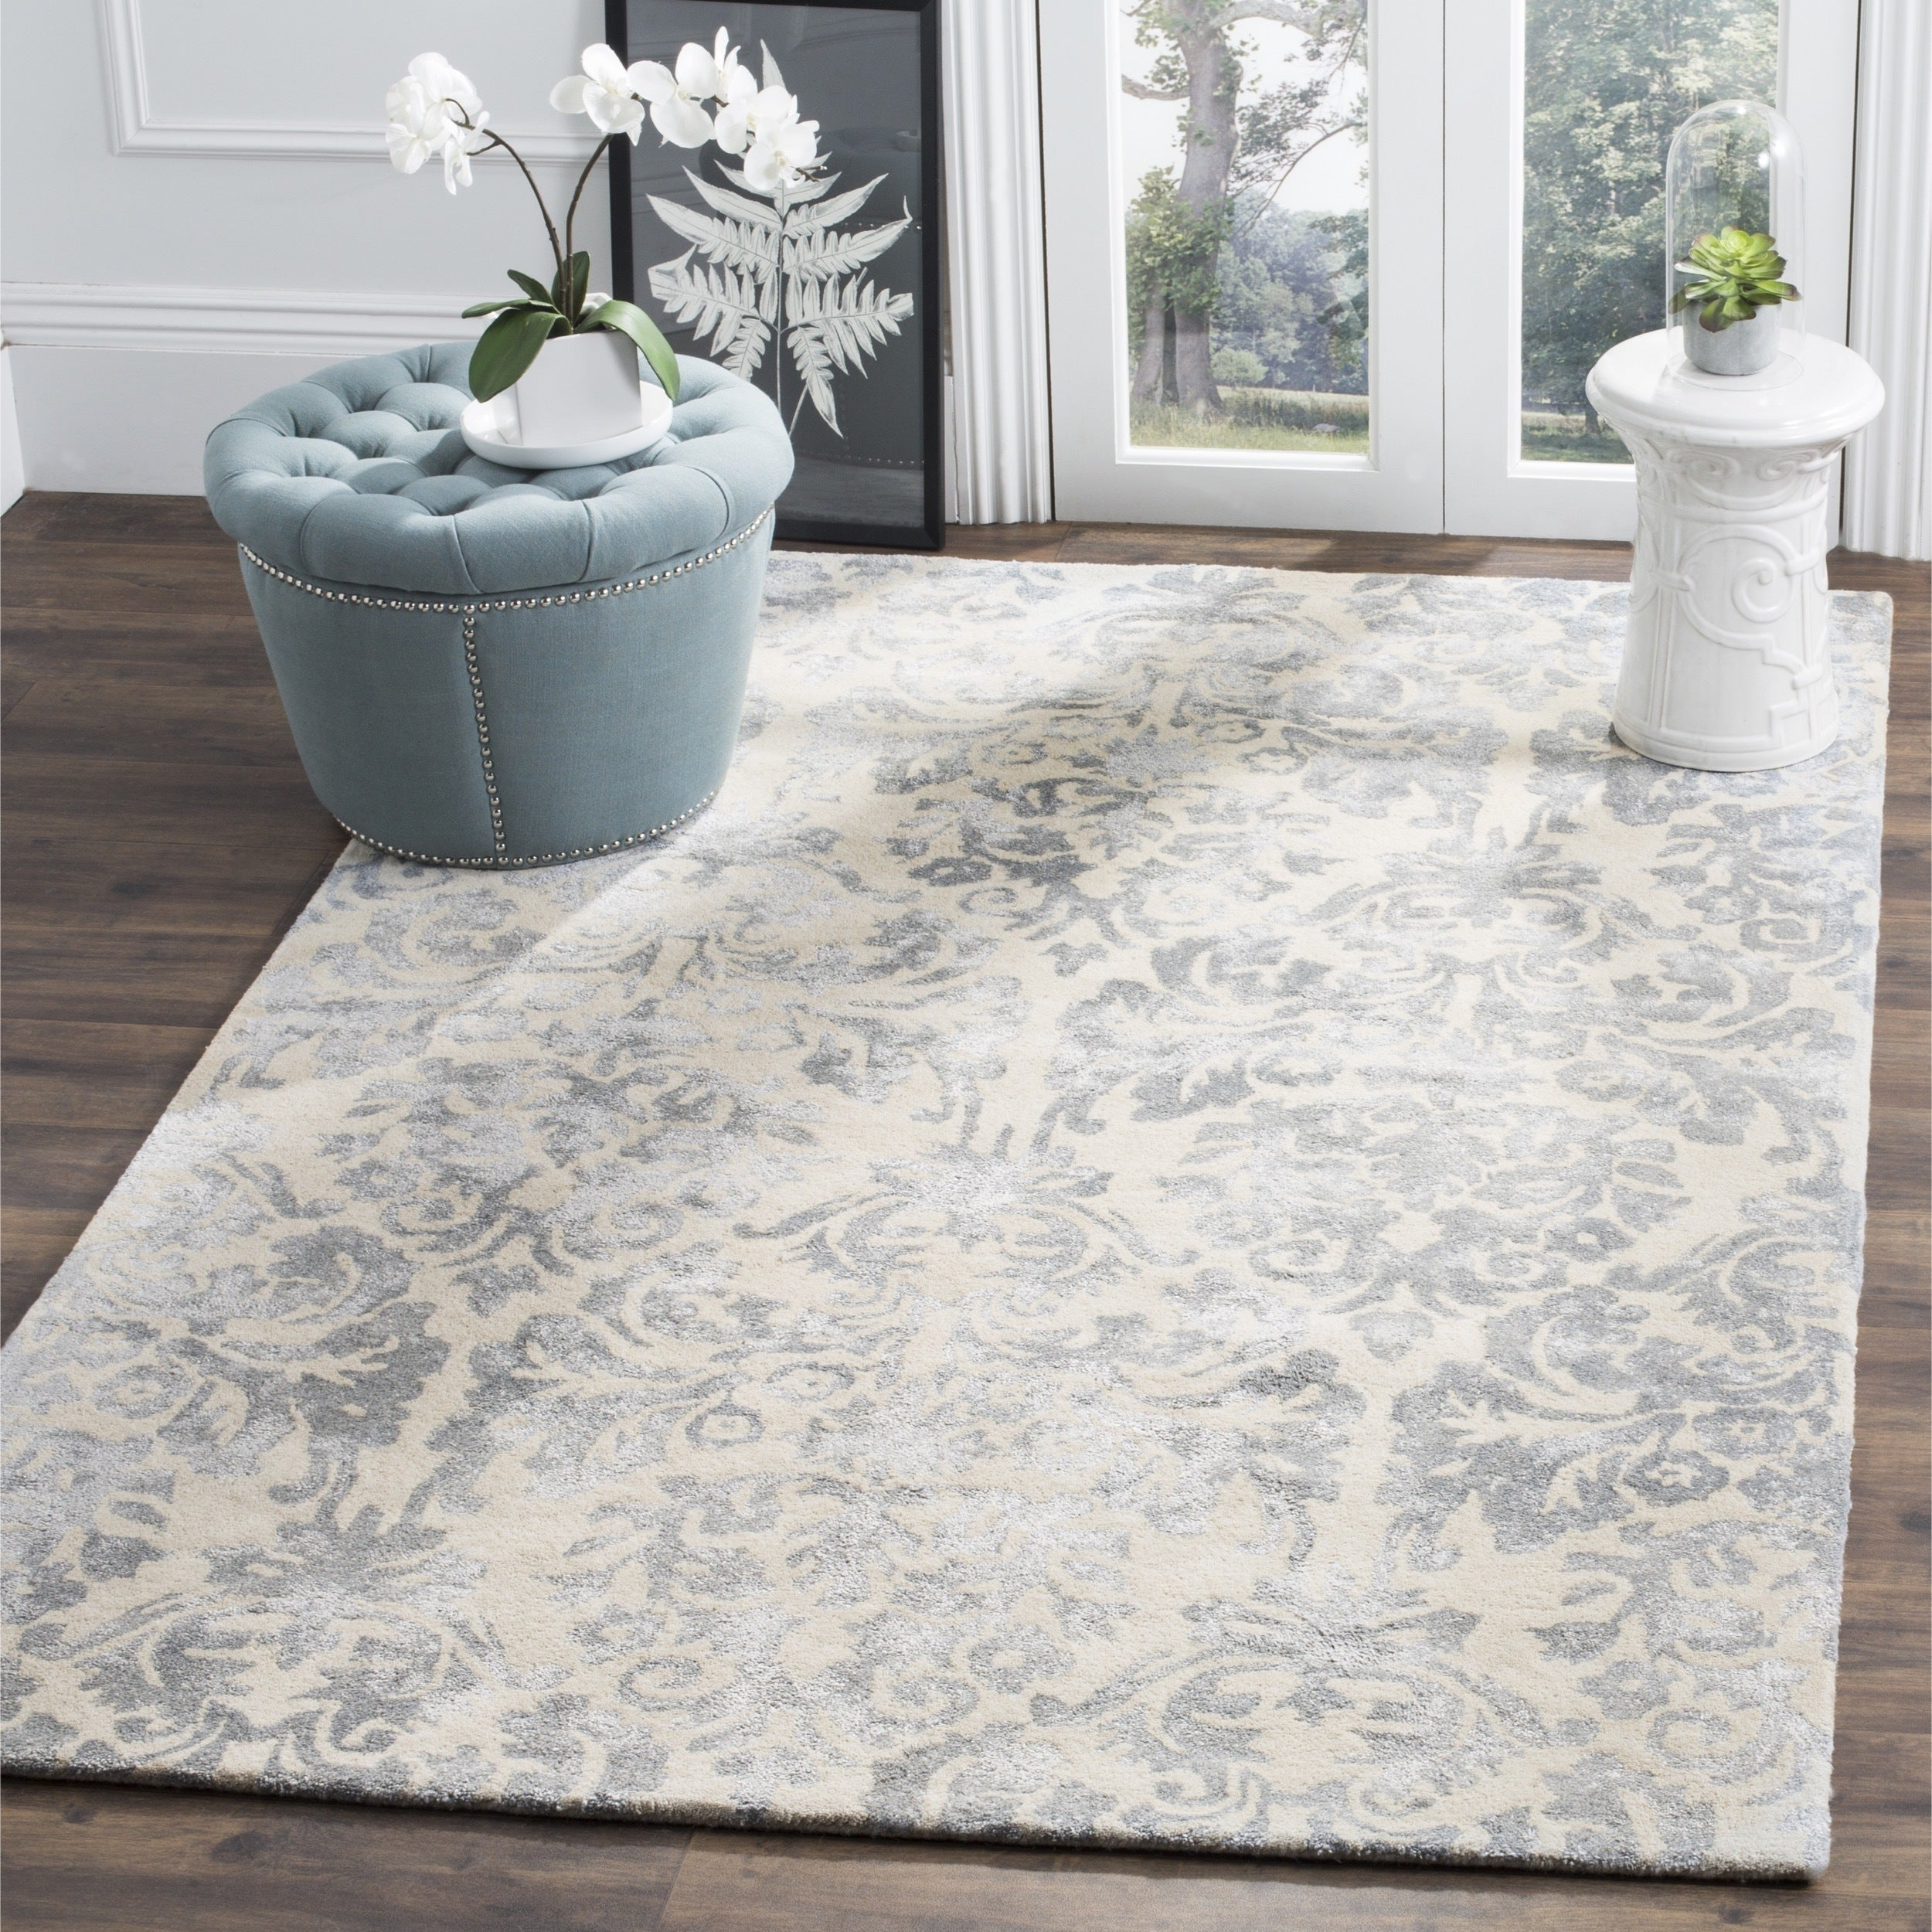 2a8ab84ee Safavieh Bella Hand-Woven Wool Ivory   Silver Area Rug - 5  X 5  Square